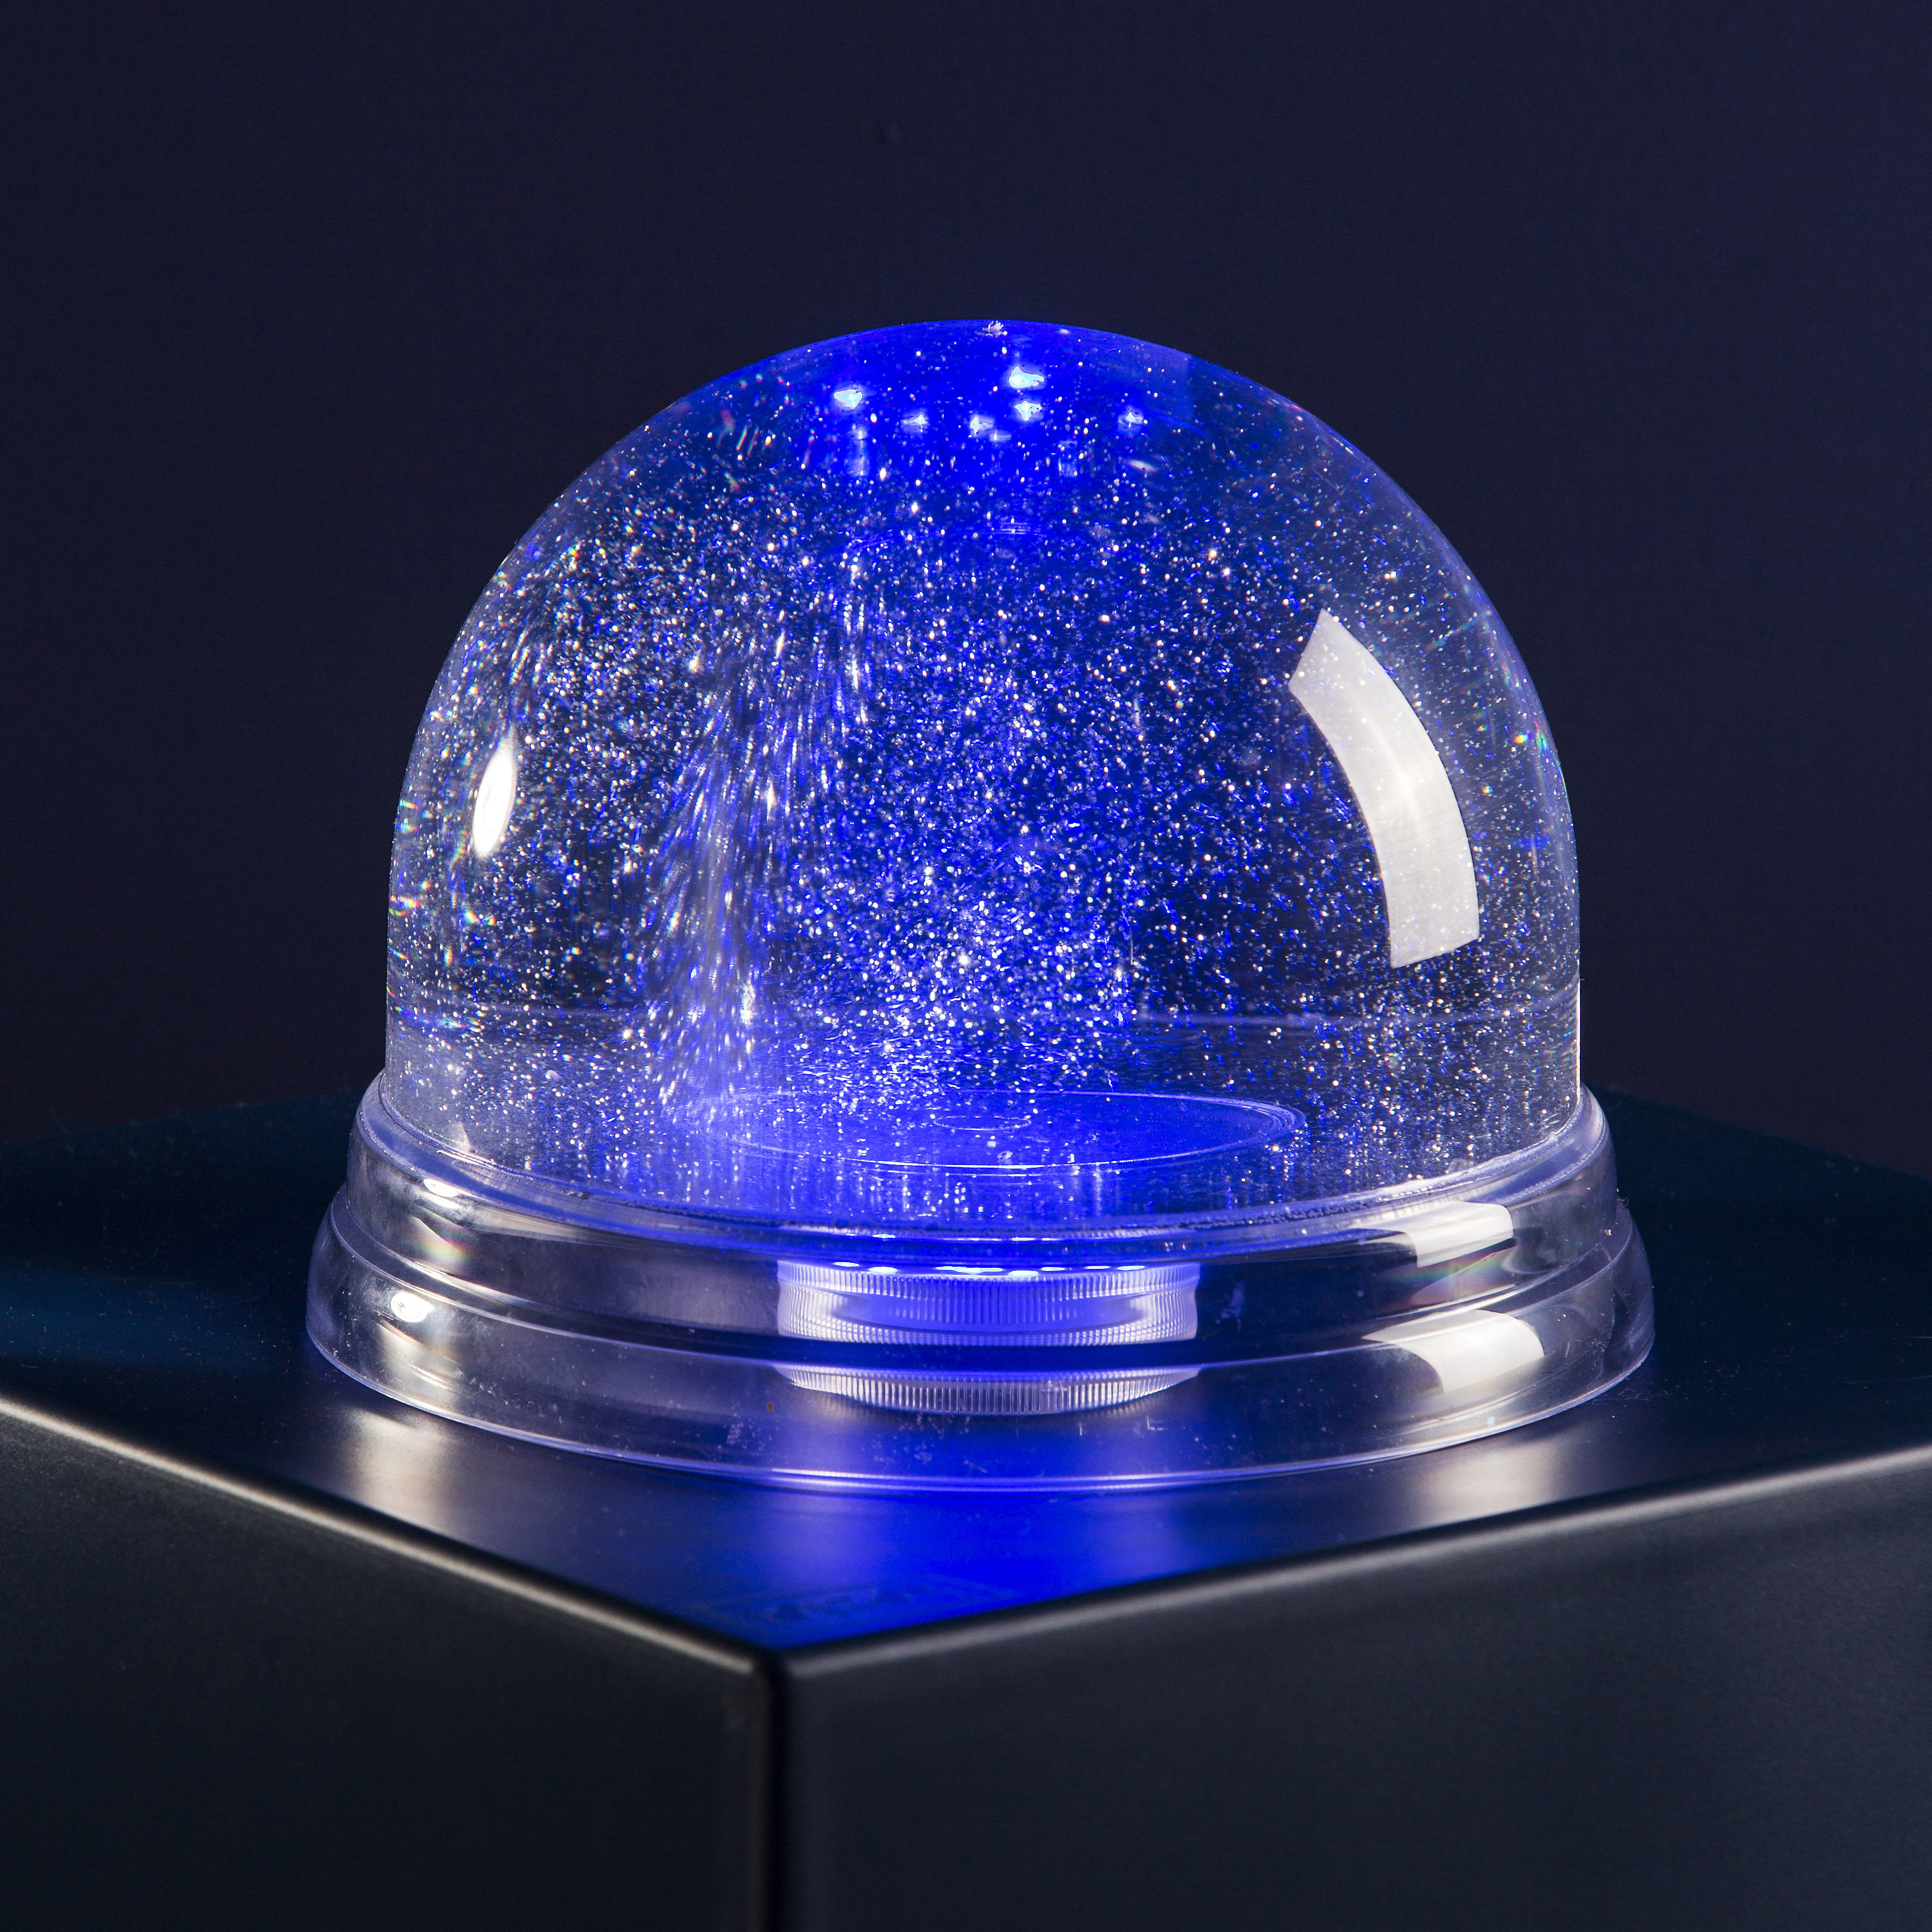 boule neige lumineuse g ante led 22 cm transparent. Black Bedroom Furniture Sets. Home Design Ideas